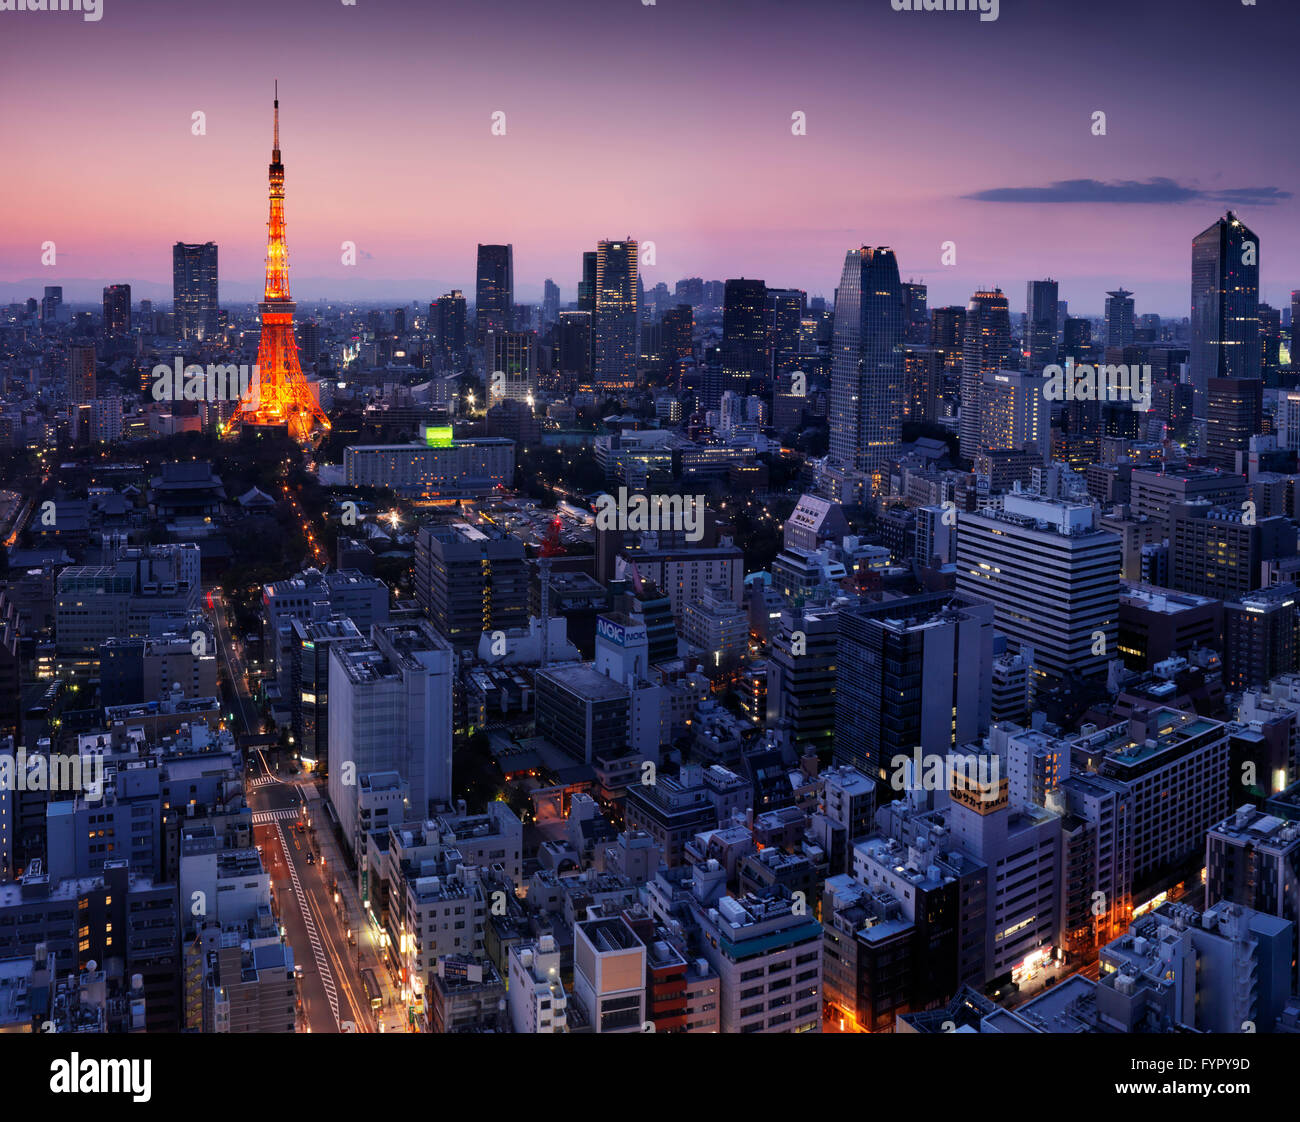 Aerial cityscape with Tokyo Tower illuminated in twilight, Minato, Tokyo, Japan - Stock Image